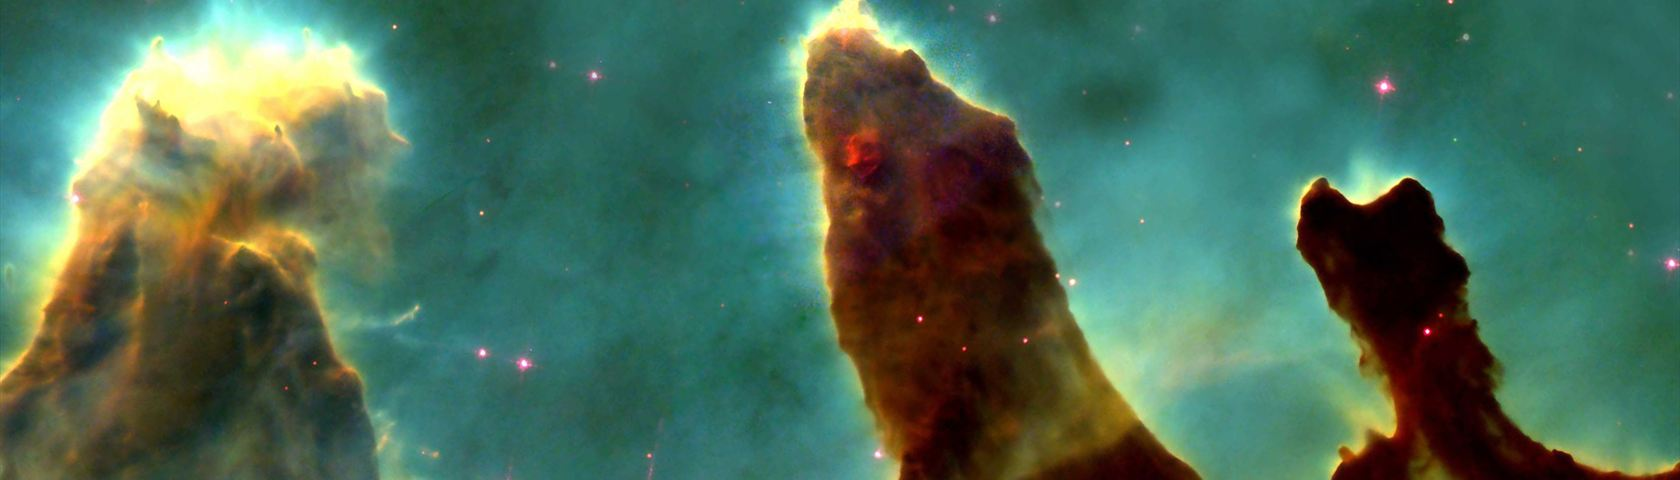 Pillars of creation images wallpaperfusion by binary - Pillars of creation wallpaper ...